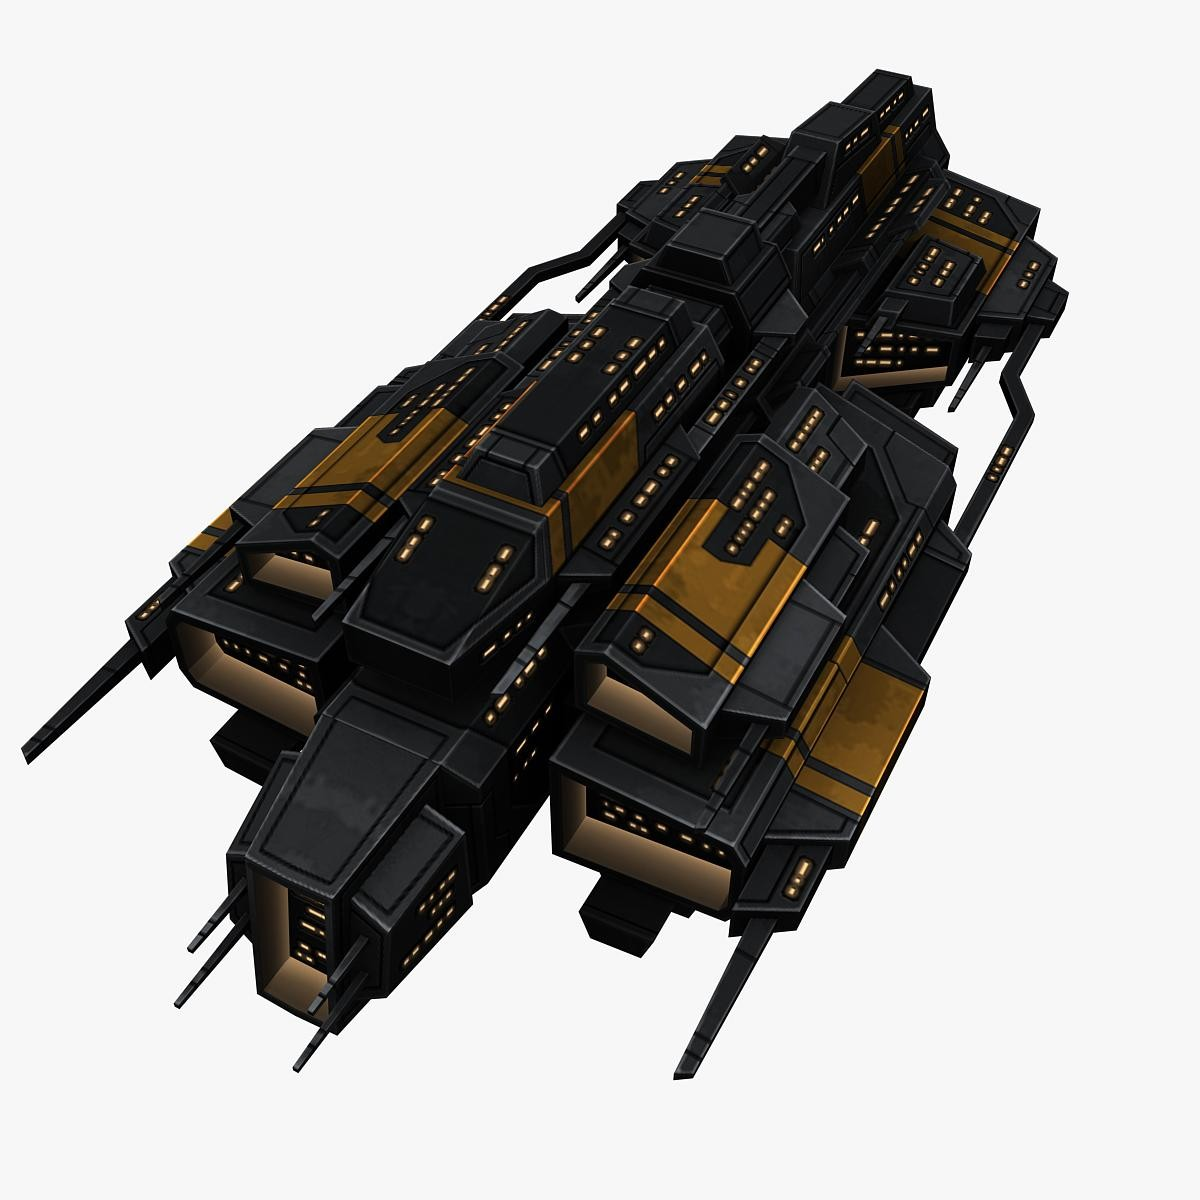 space_battleship_5_upgraded_preview_0.jpg